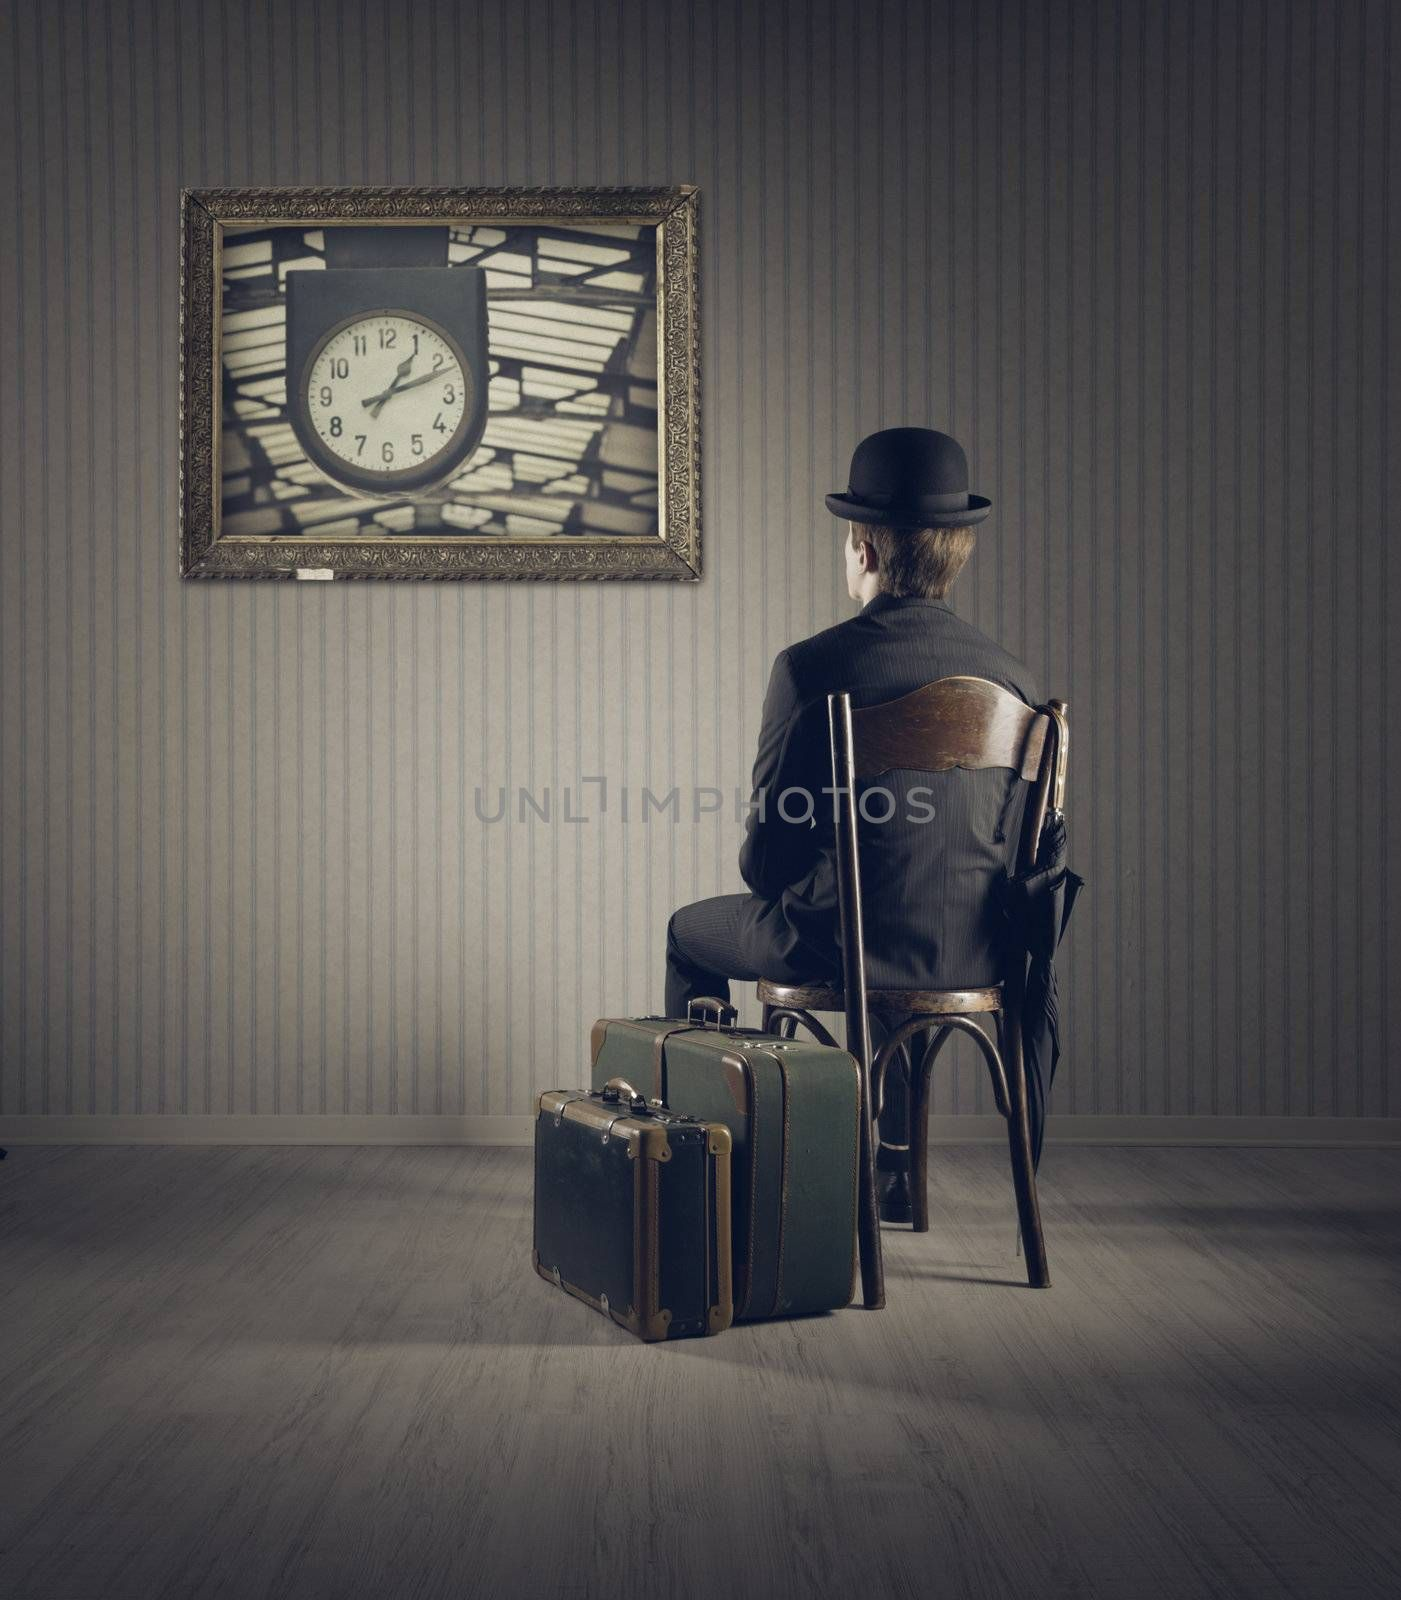 Business Travel by stokkete